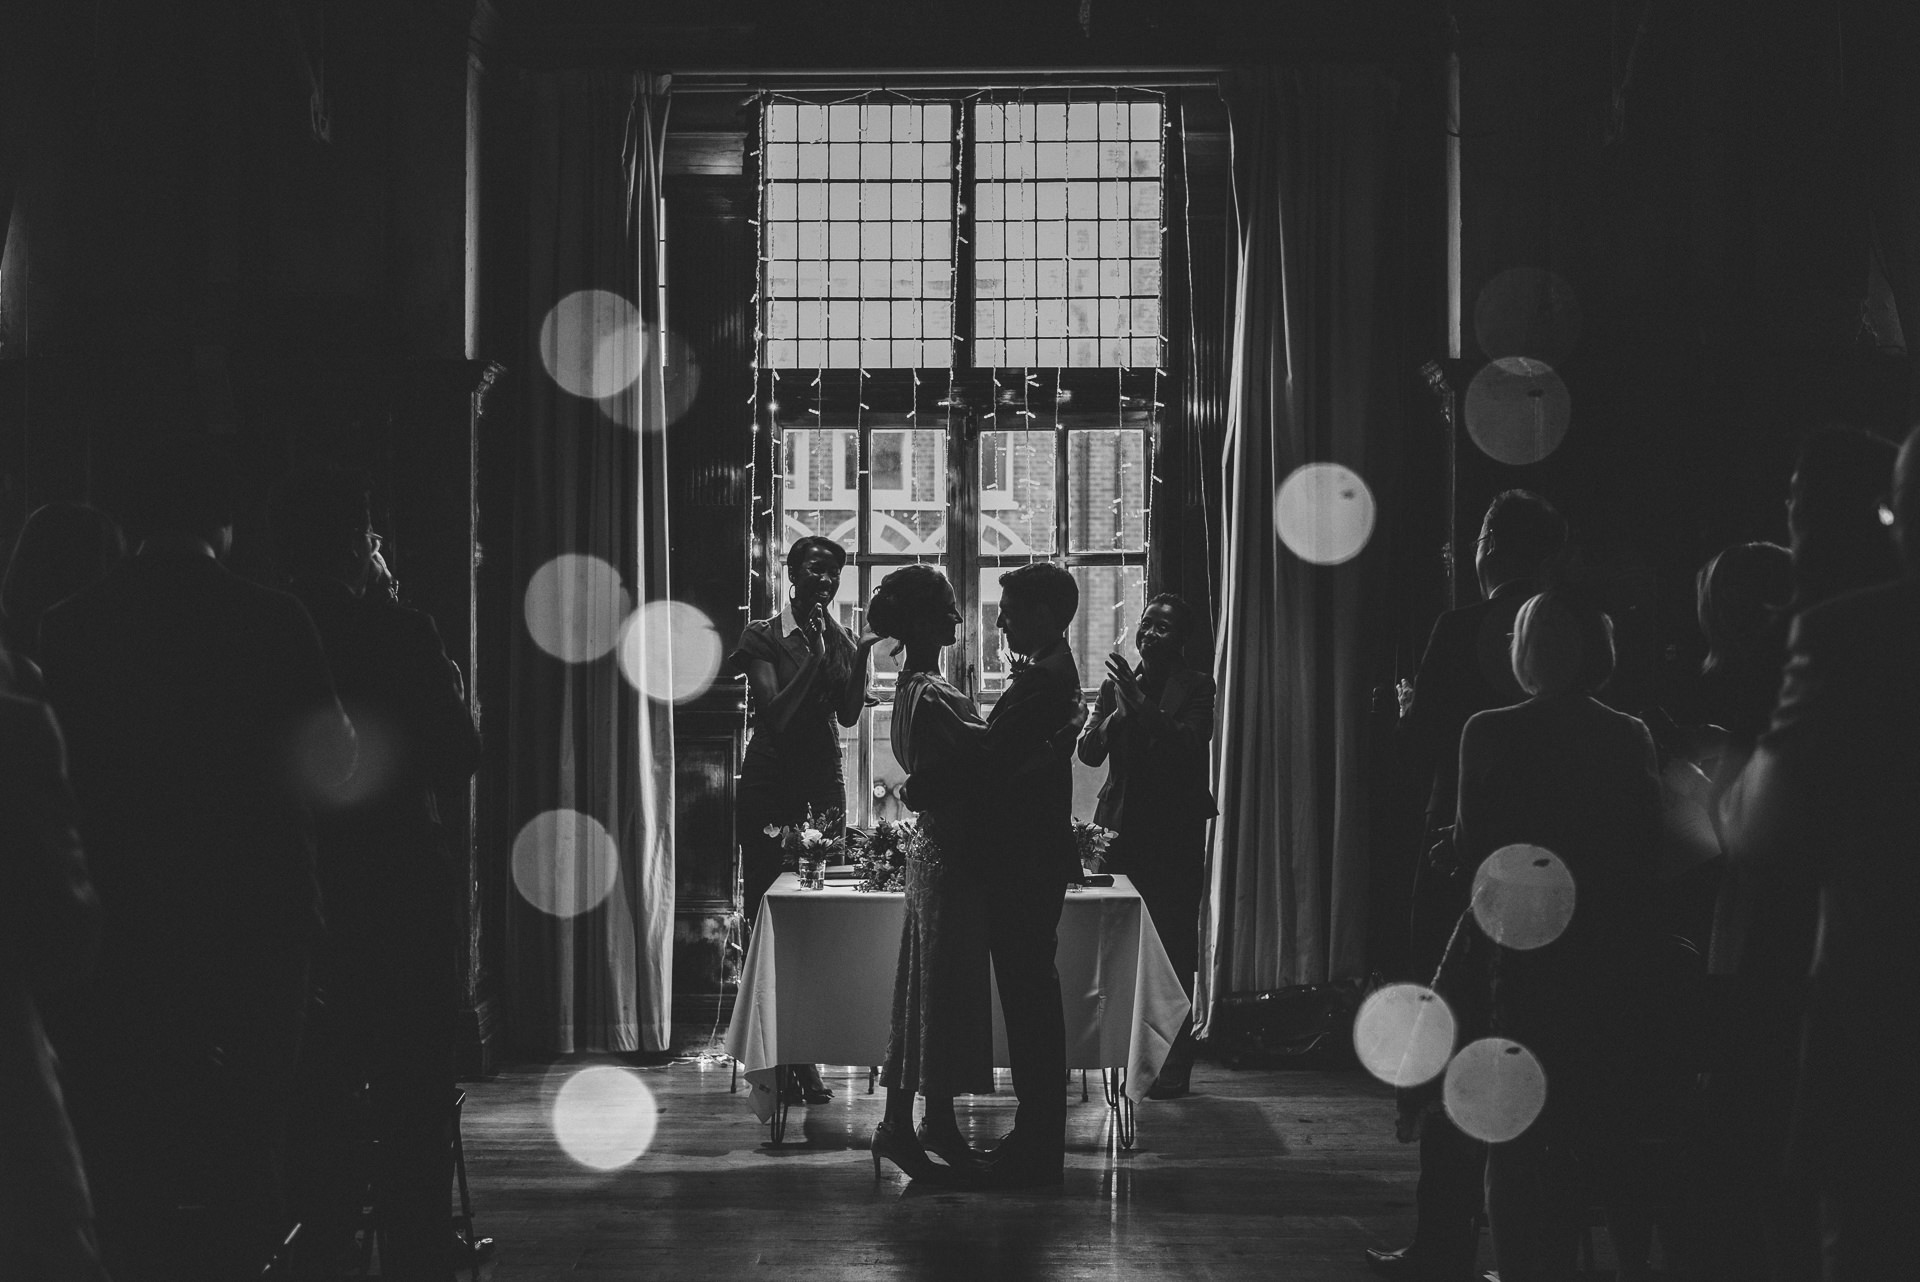 Couple embrace after their first kiss. Creative London wedding photography ideas